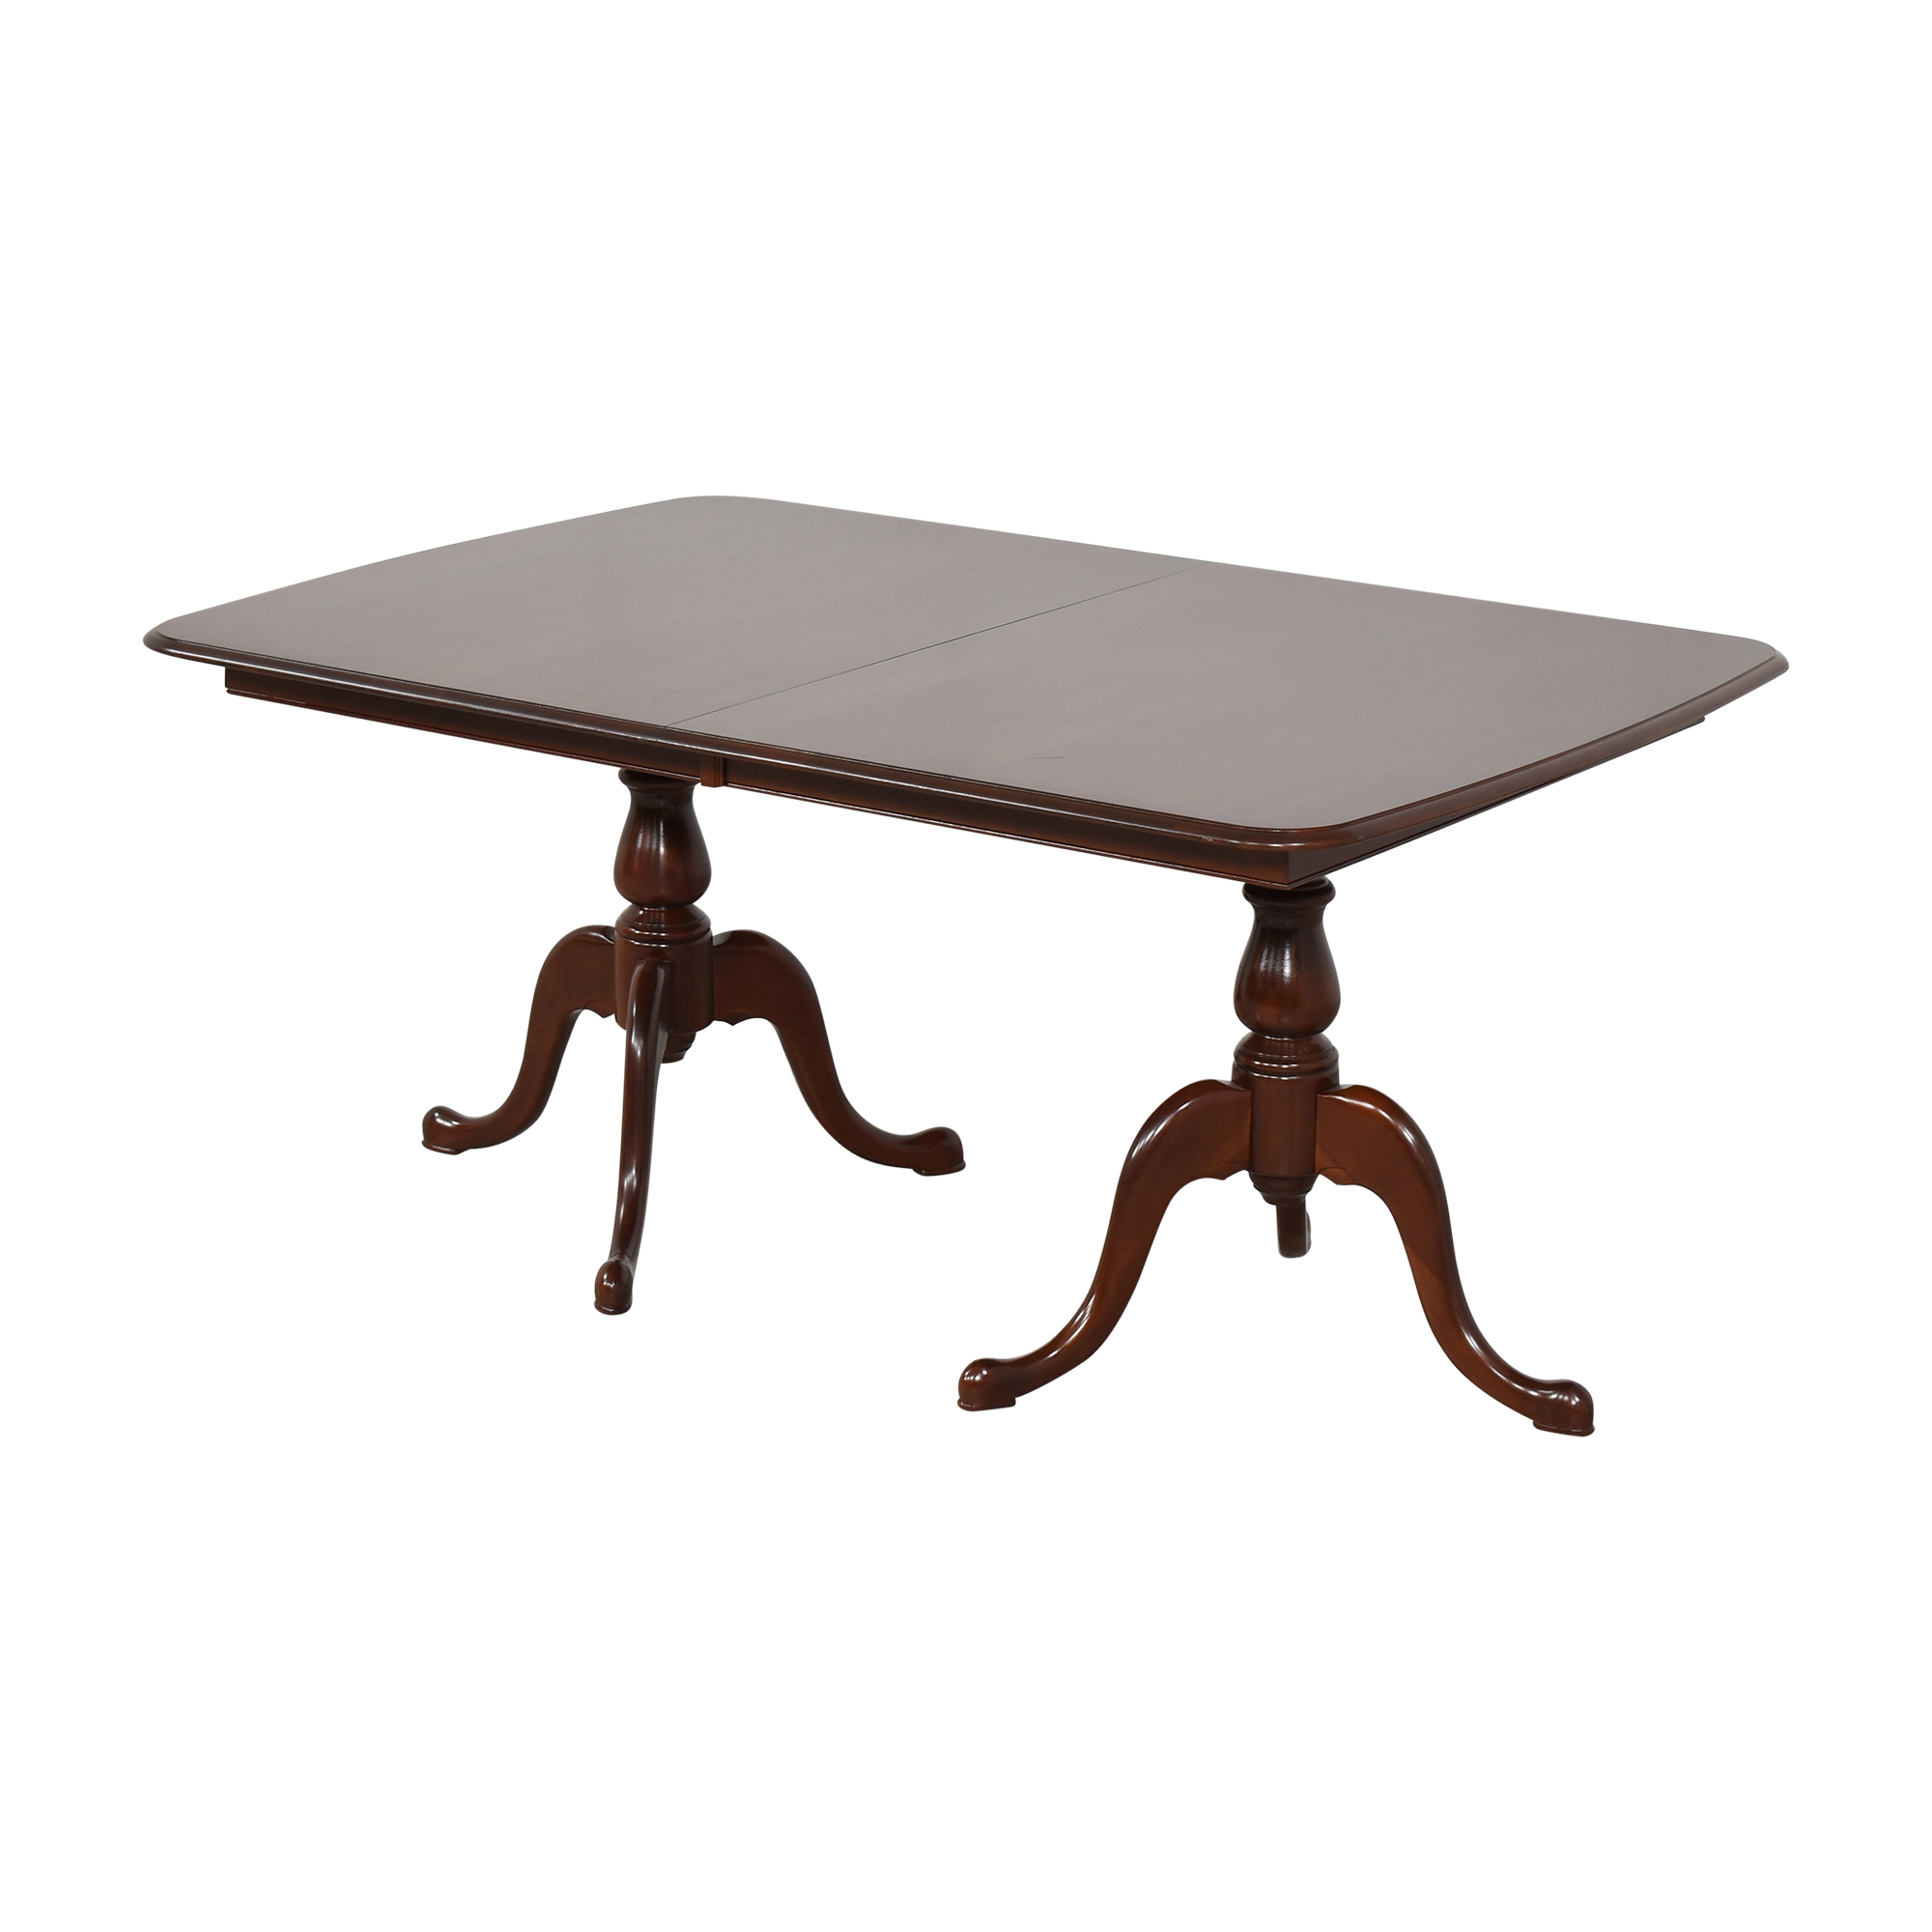 buy The Colonial Furniture Company Extendable Dining Table The Colonial Furniture Company Tables